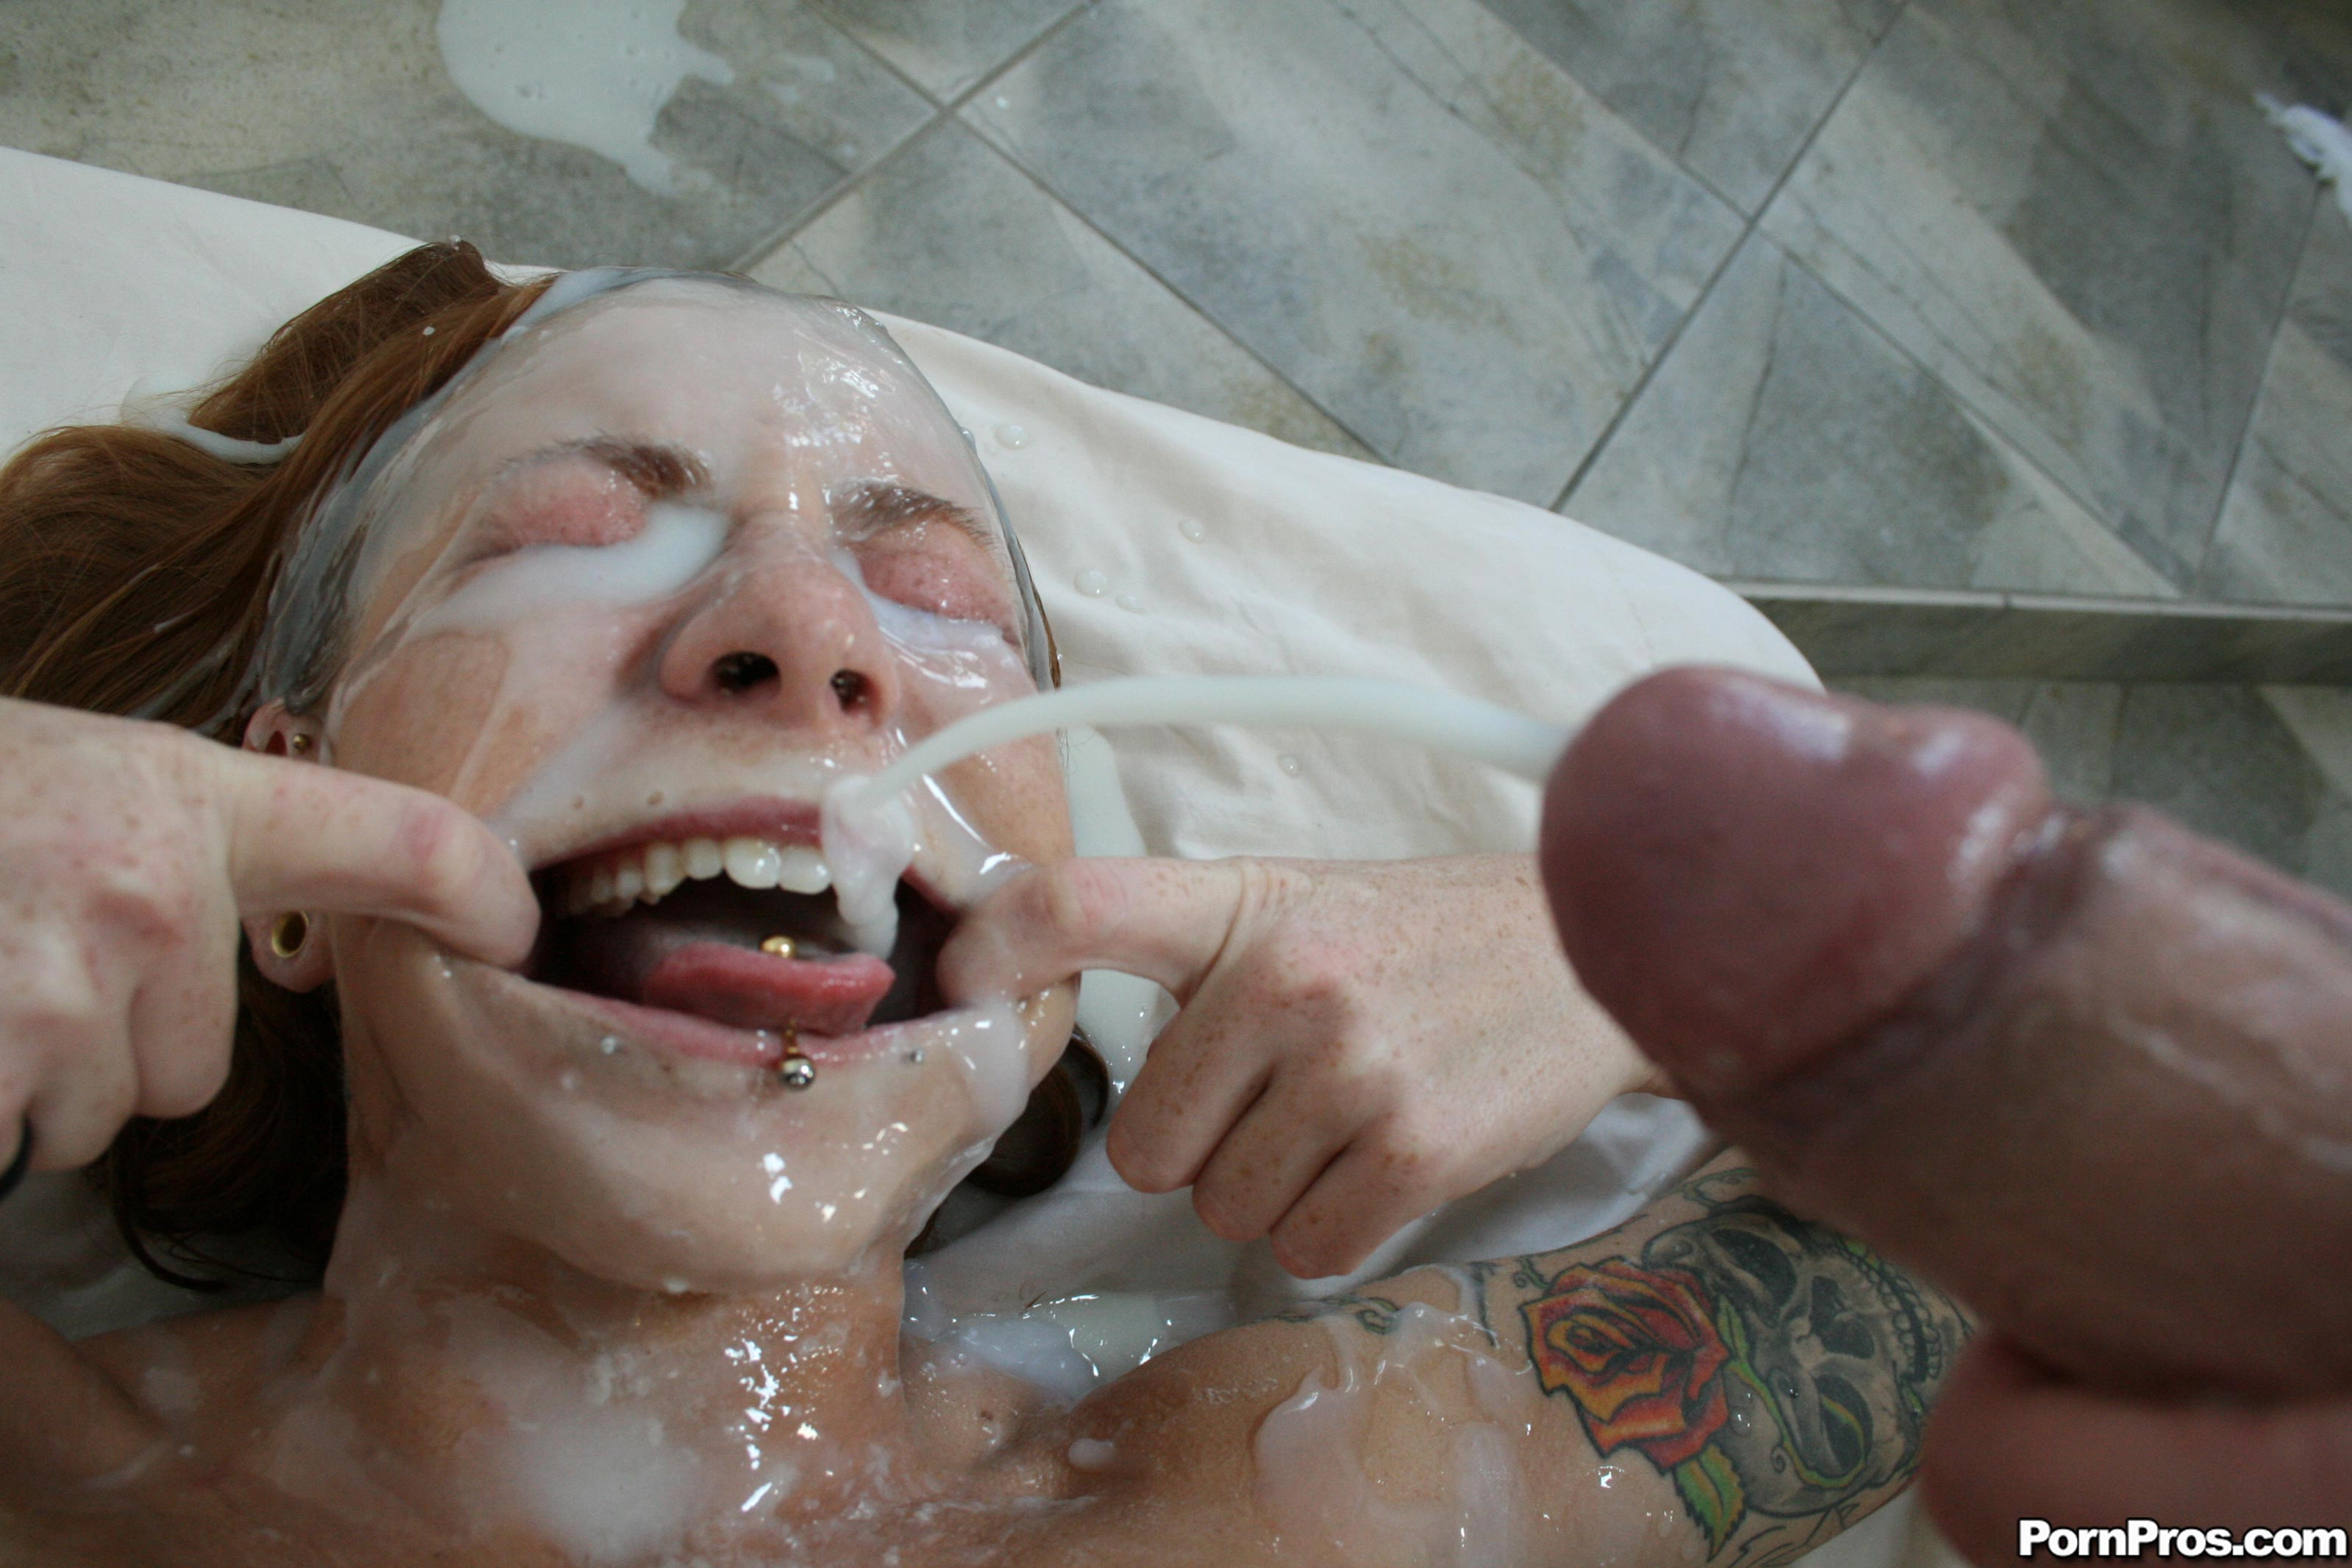 How to shave your pubic area for men video